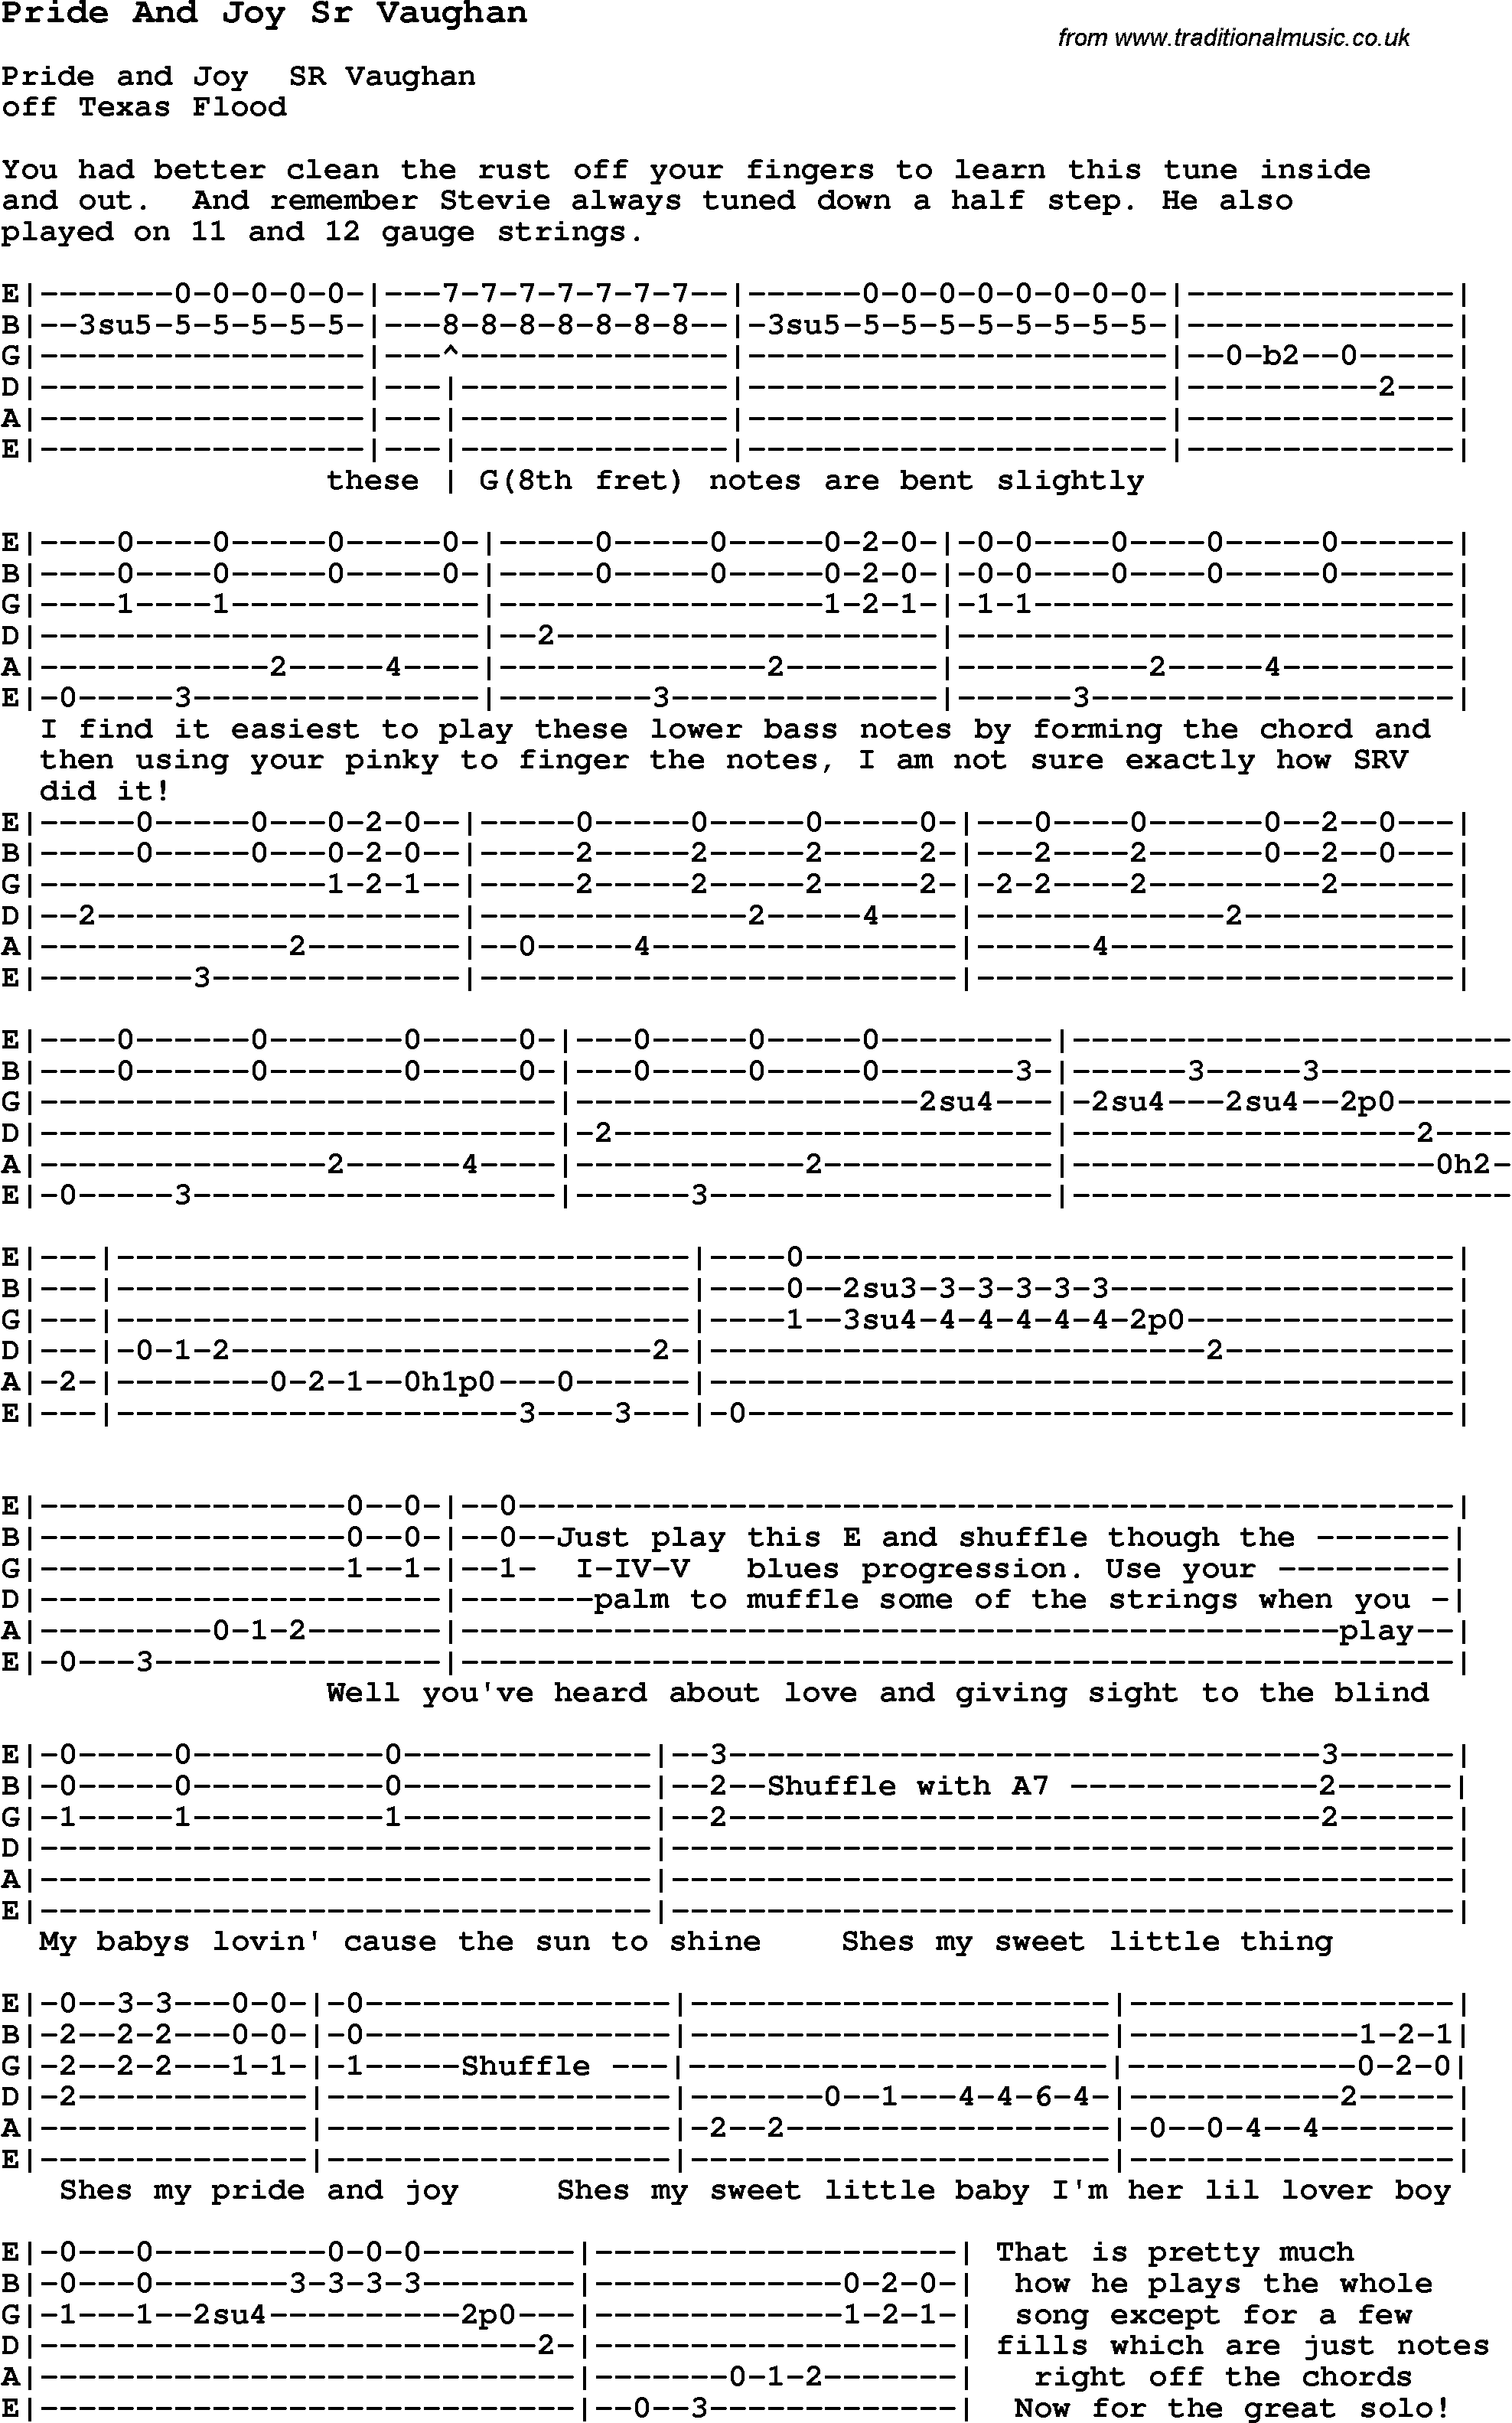 Blues Guitar lesson for Pride And Joy Sr Vaughan, with Chords ...